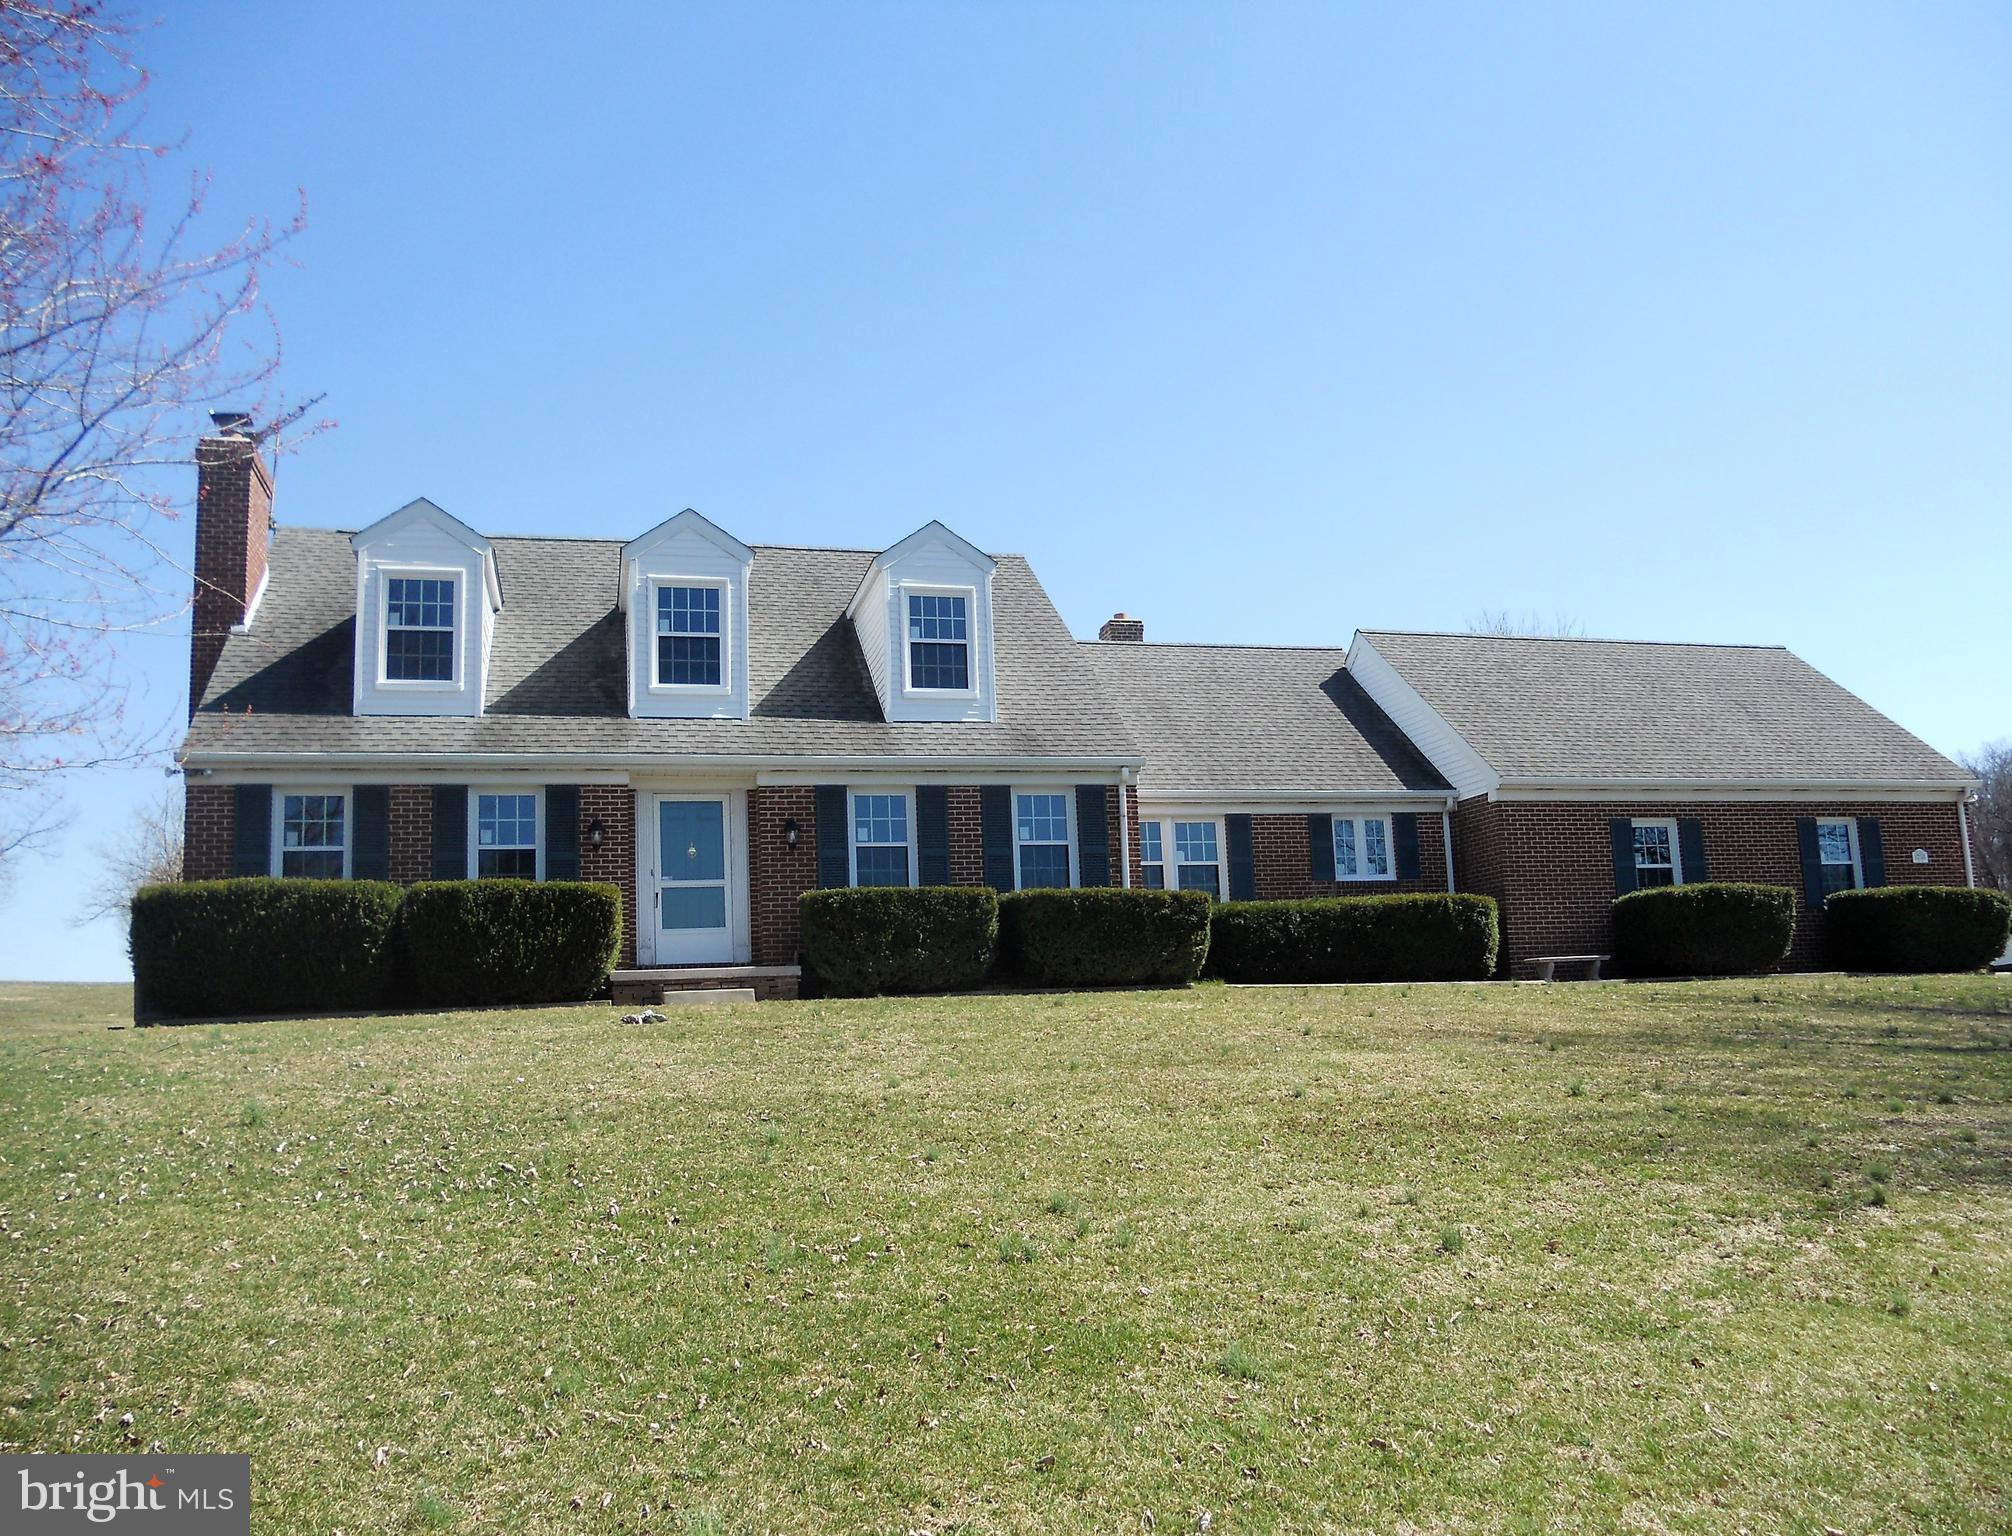 1755 MANCHESTER ROAD, WESTMINSTER, MD 21157